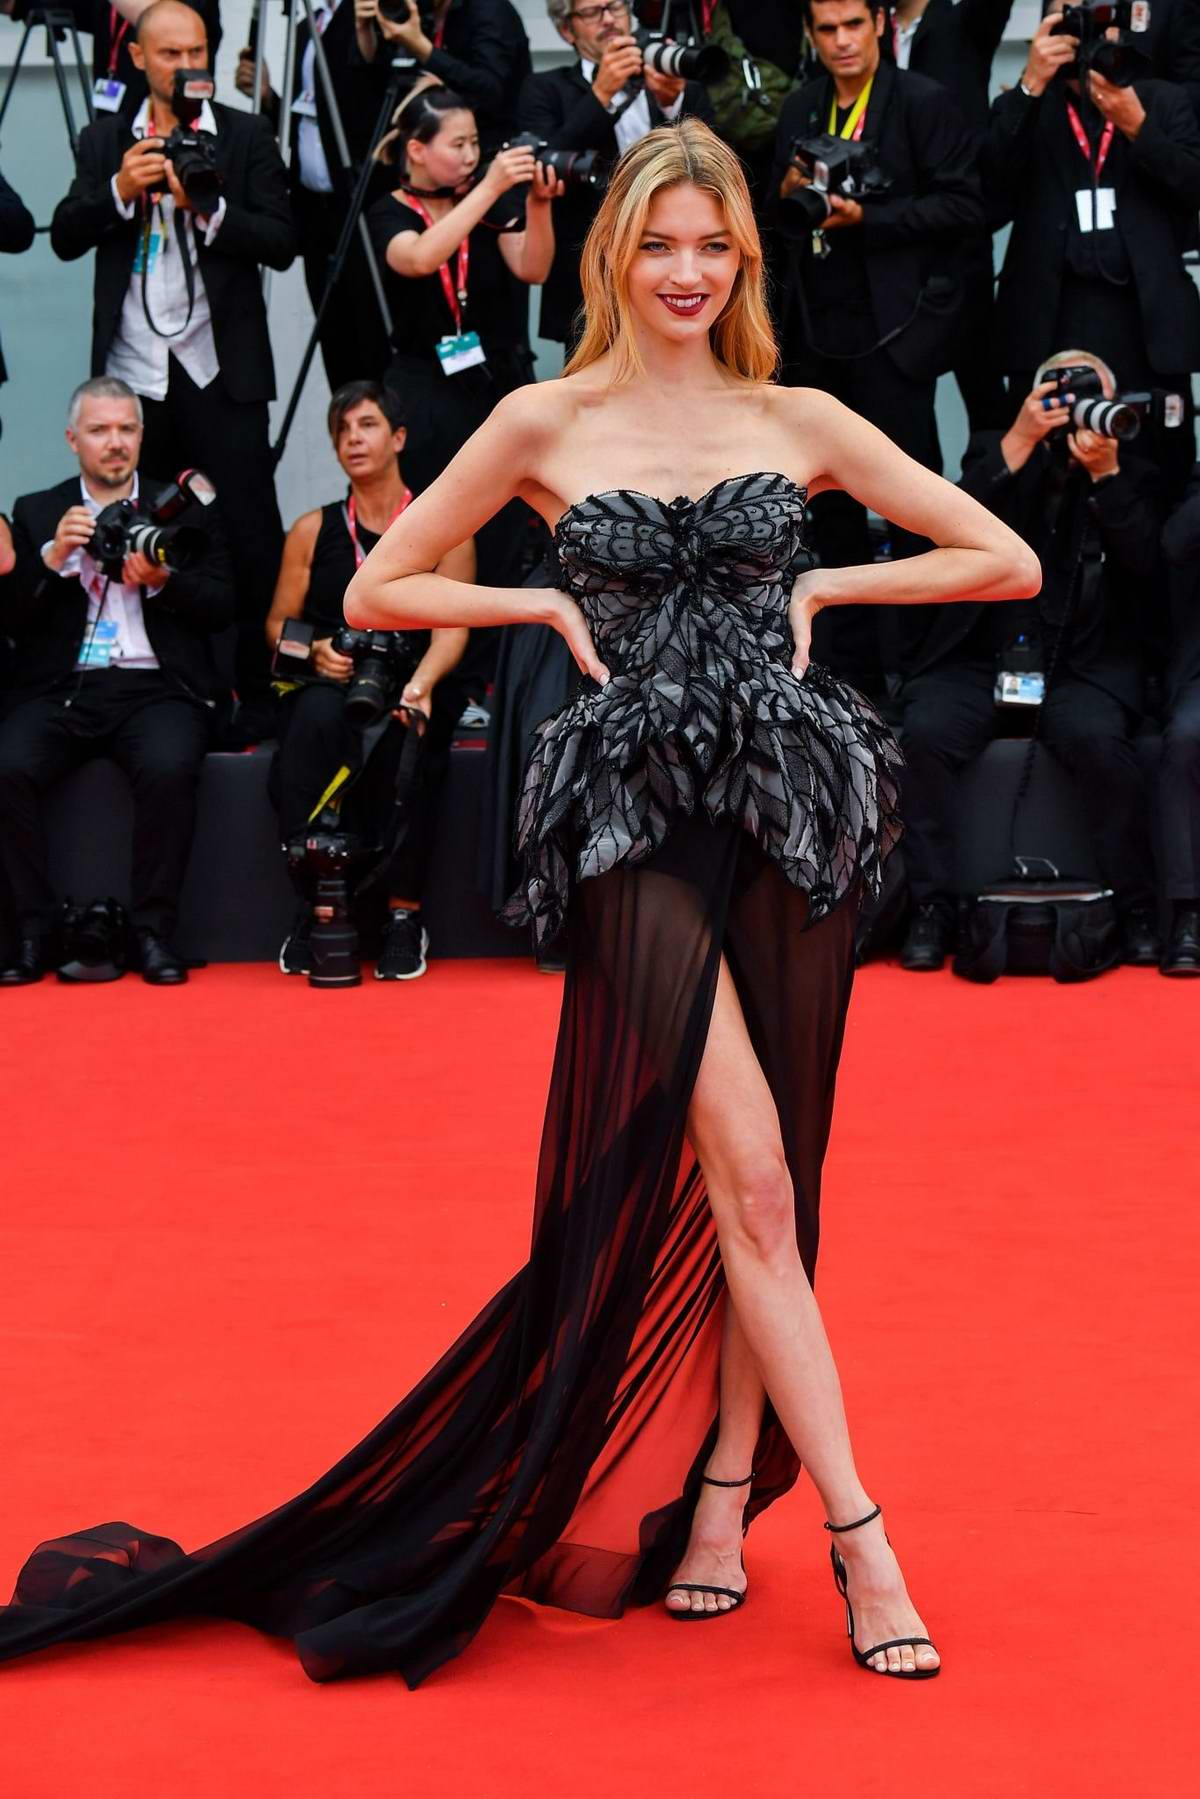 Martha Hunt attends the Opening Ceremony and 'La Vérité' (The Truth) screening during the 76th Venice Film Festival in Venice, Italy